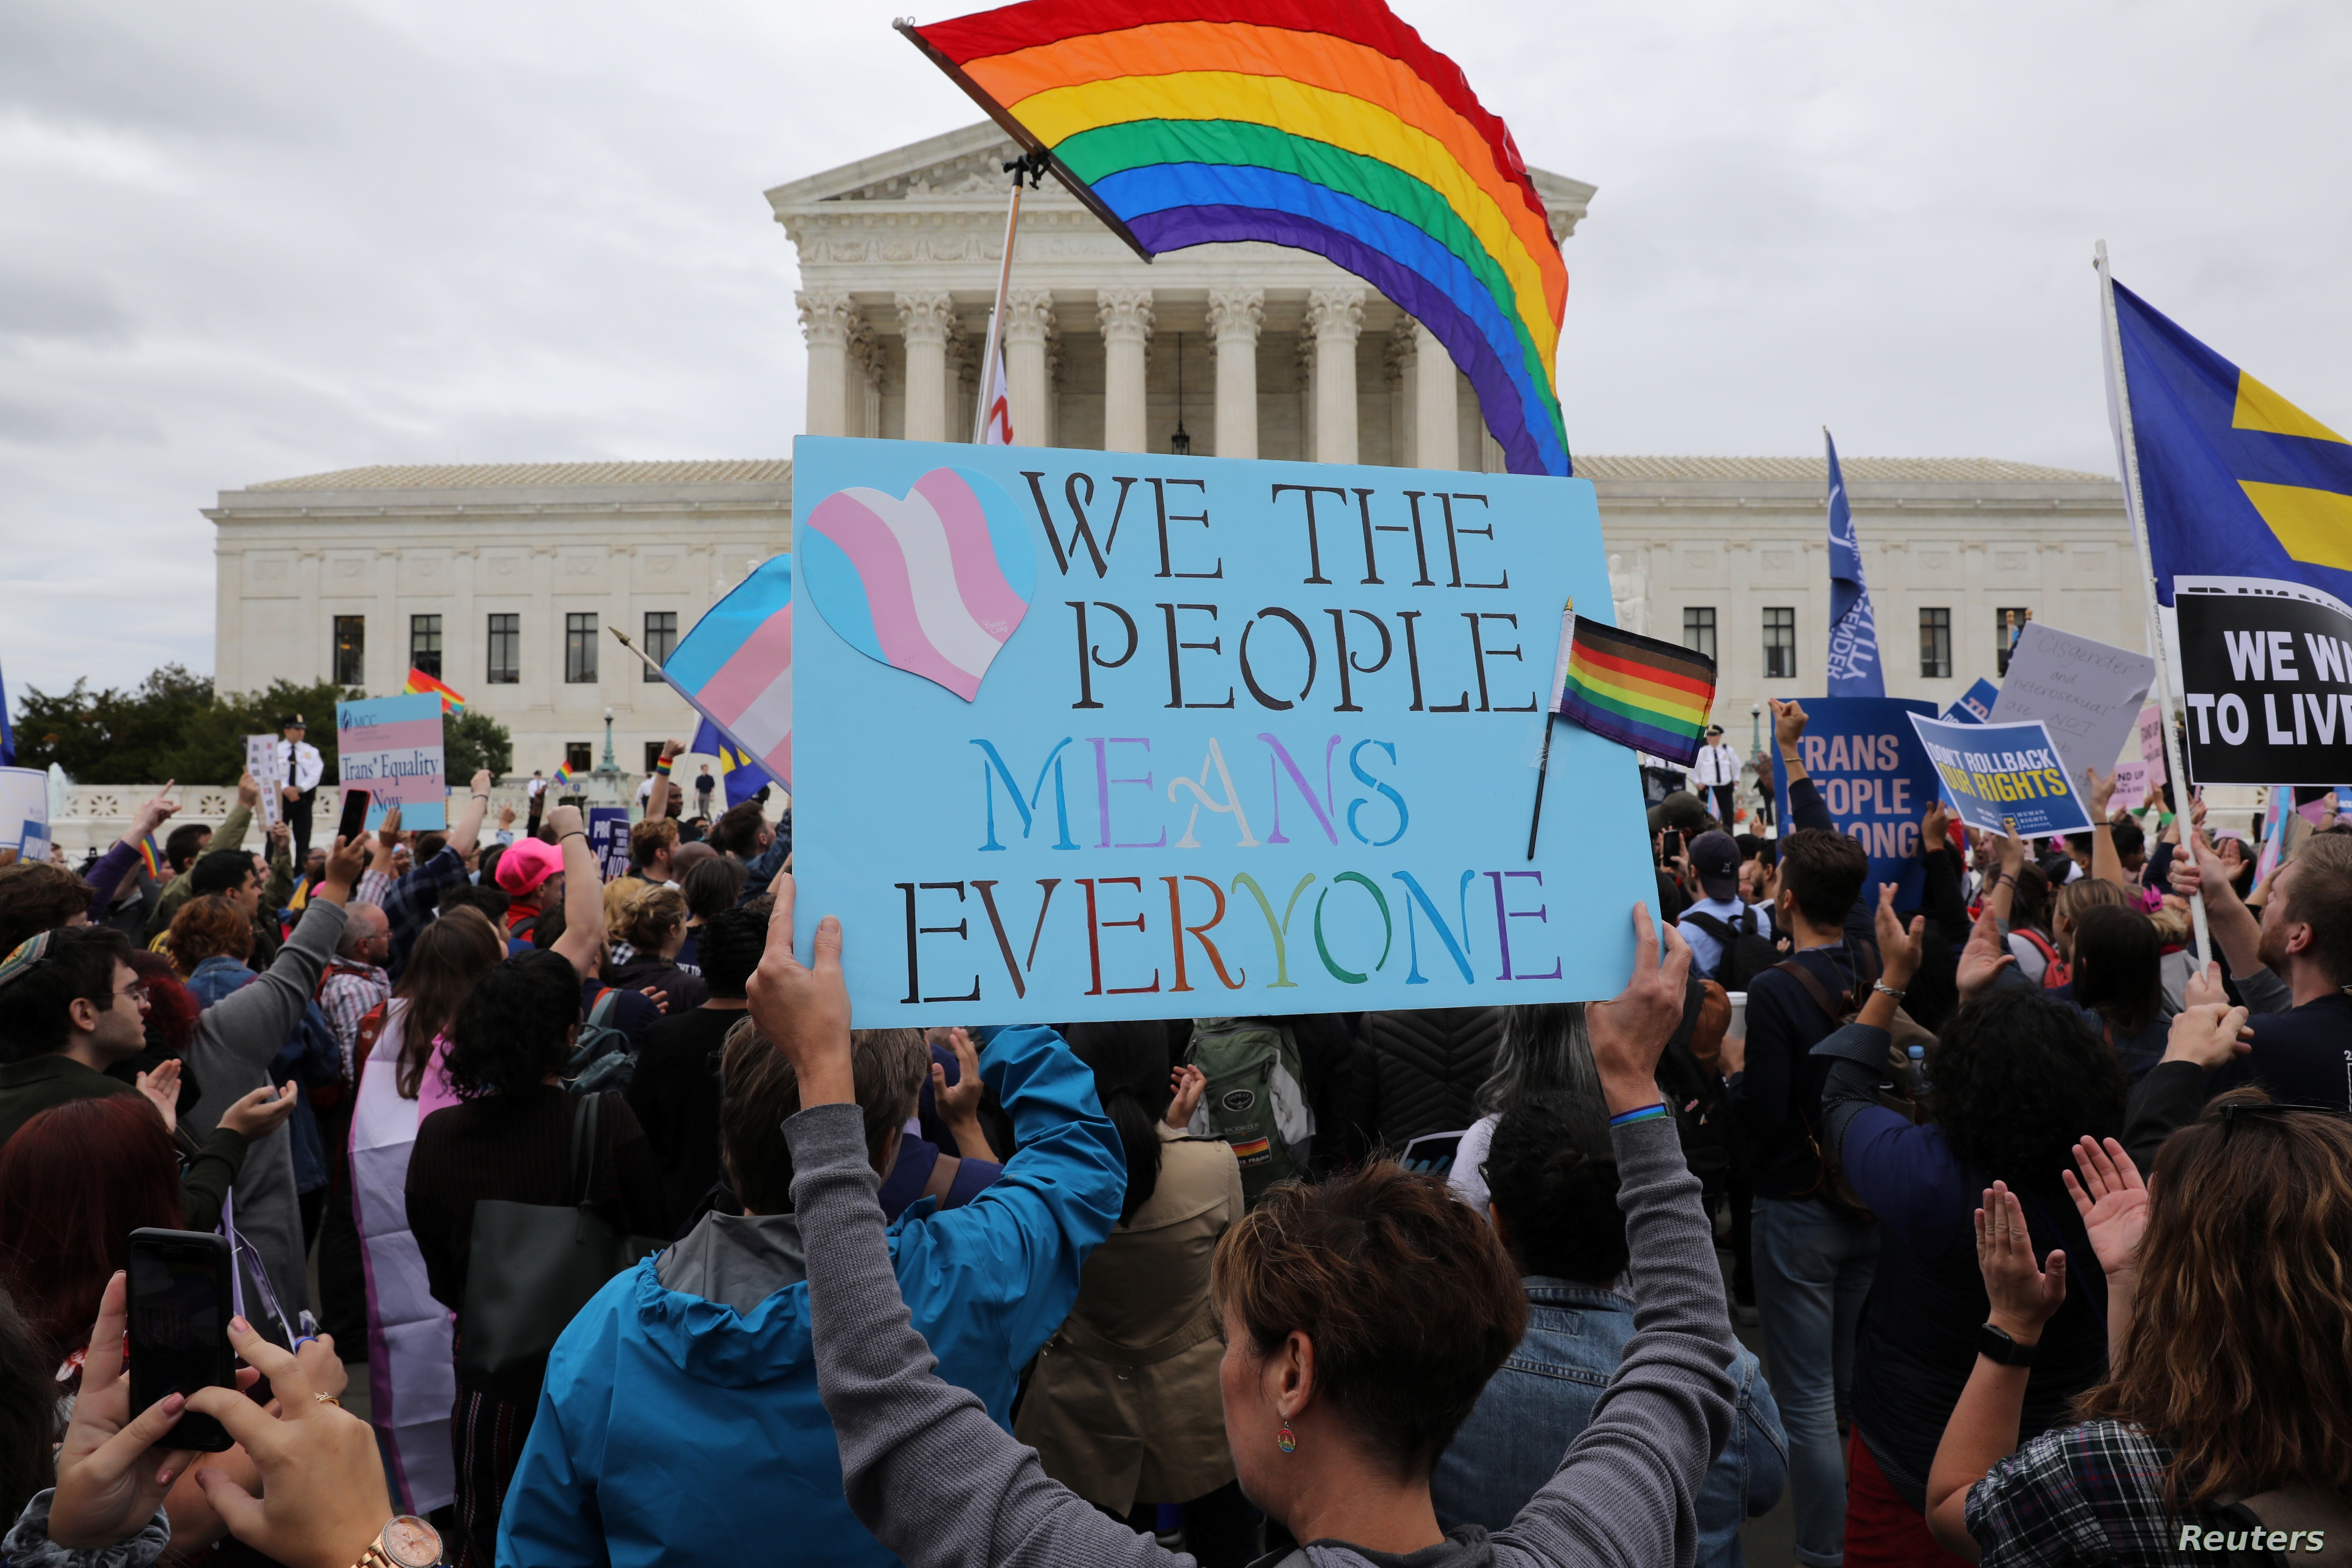 With Landmark Decision, US Supreme Court Expands Protections for LGBTQ Workers | Voice of America - English